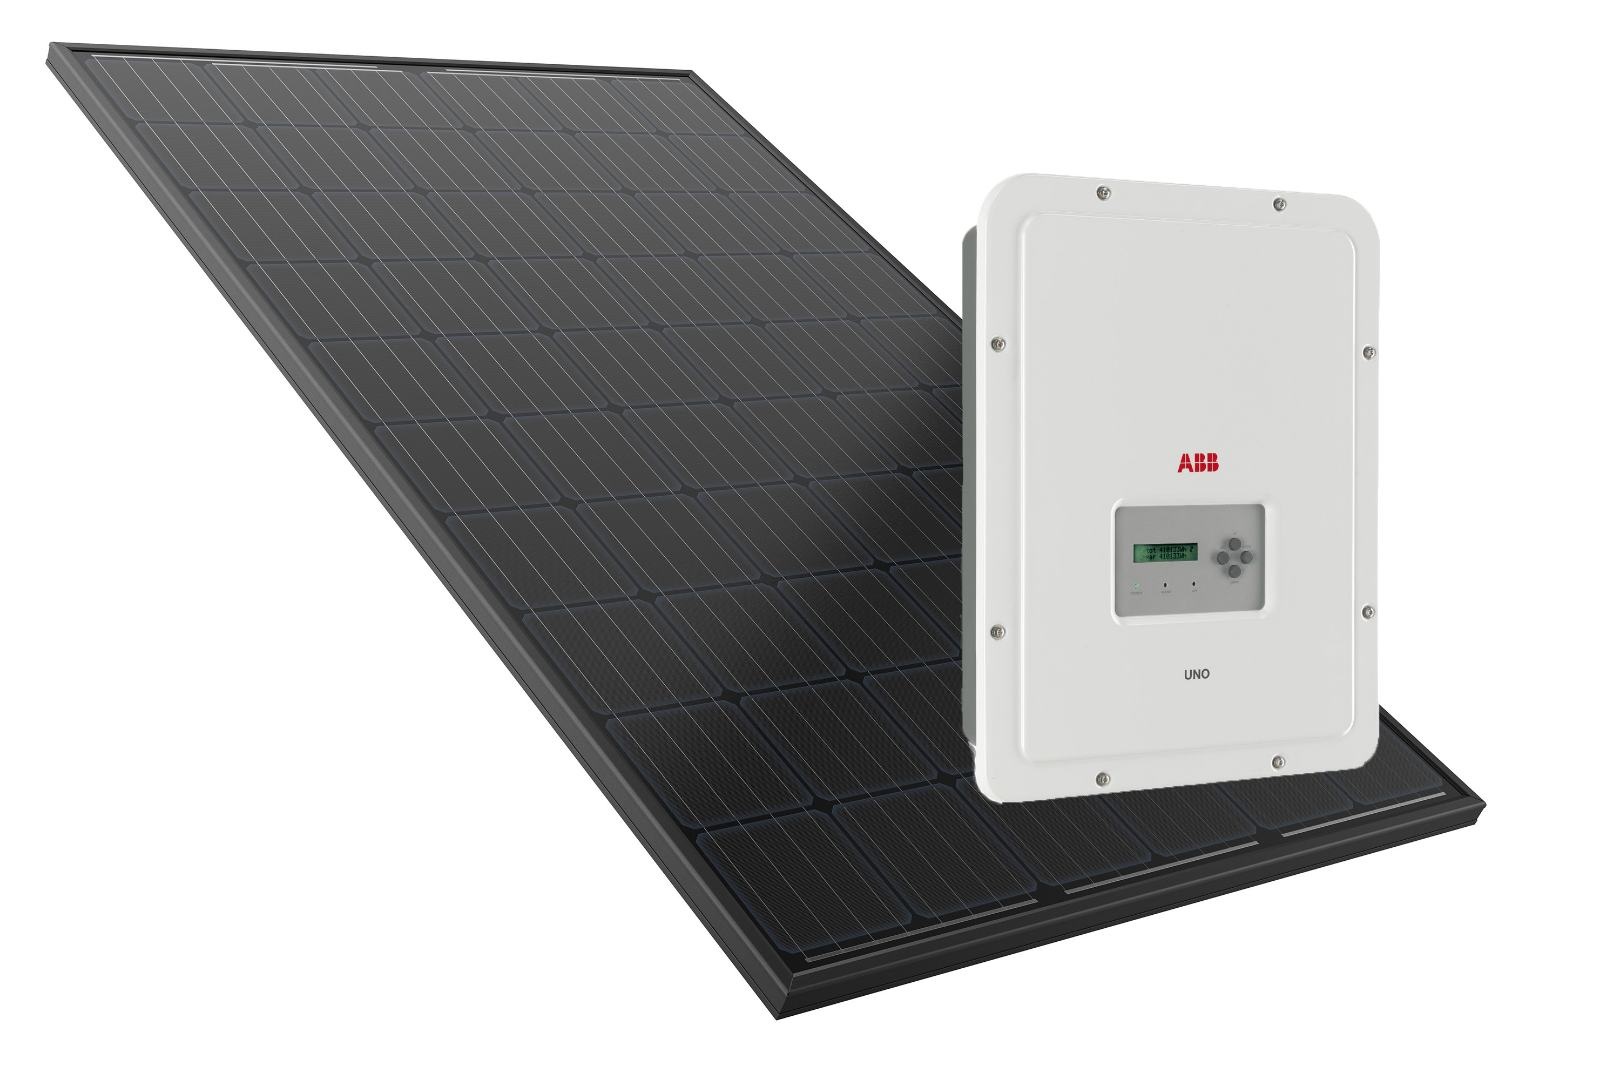 Premium PV systems use REC 280w twin peak panels and ABB Inverters